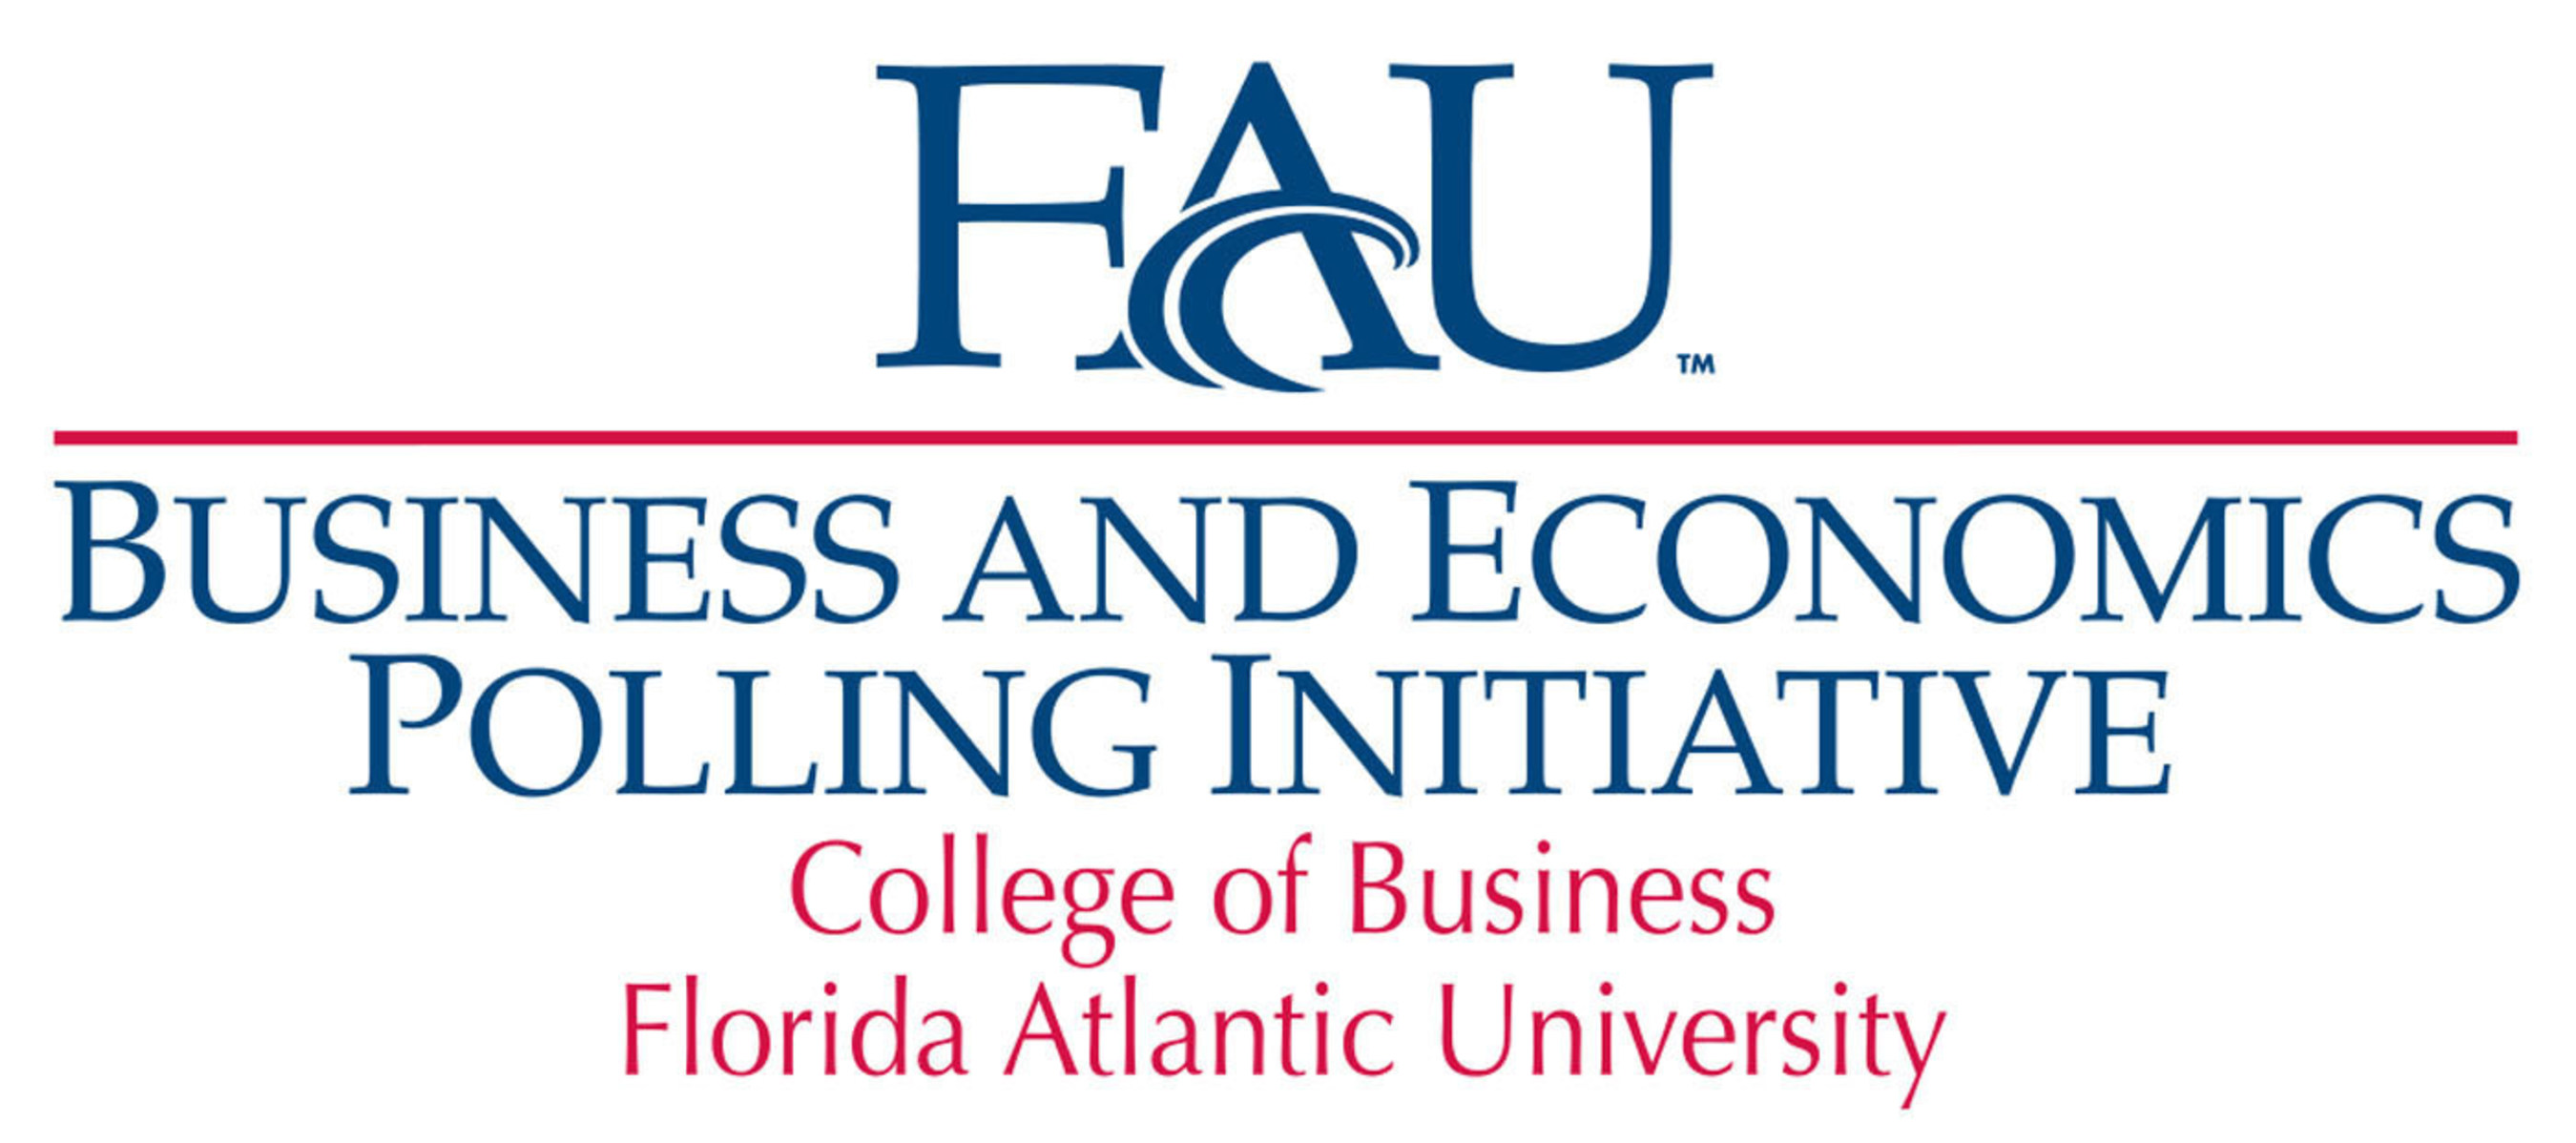 he Business and Economics Polling Initiative (BEPI) at Florida Atlantic University conducts surveys on business, economic, political, and social issues with main focus on Hispanic attitudes and opinions at regional, state and national levels.